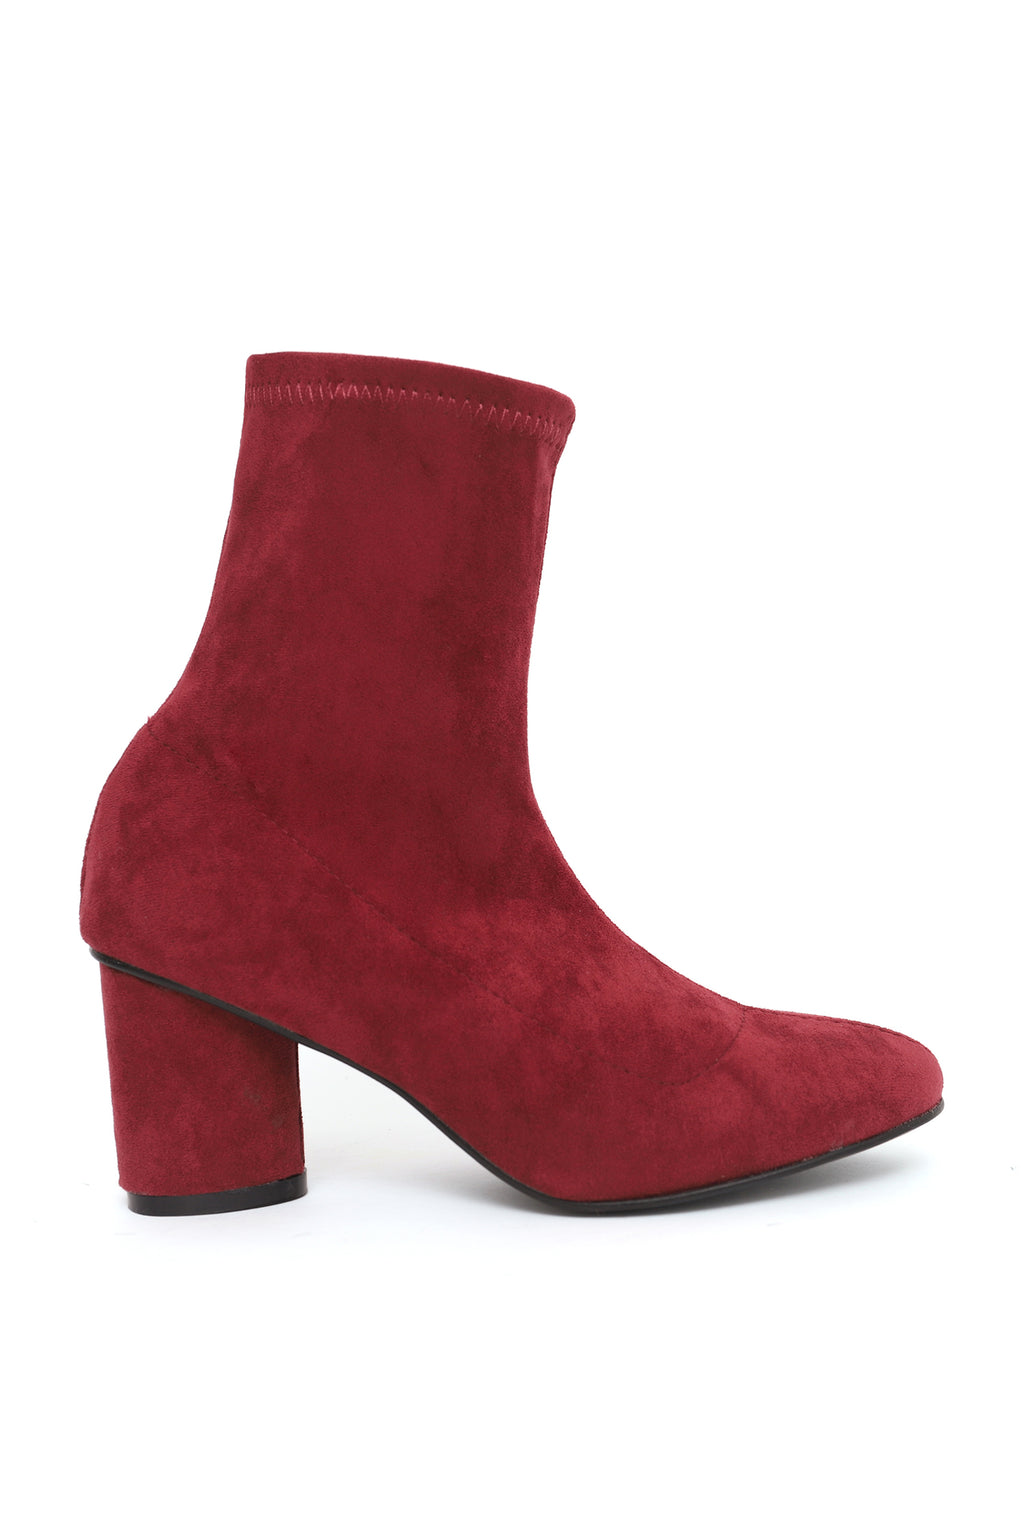 SICILY BOOTS -WINE